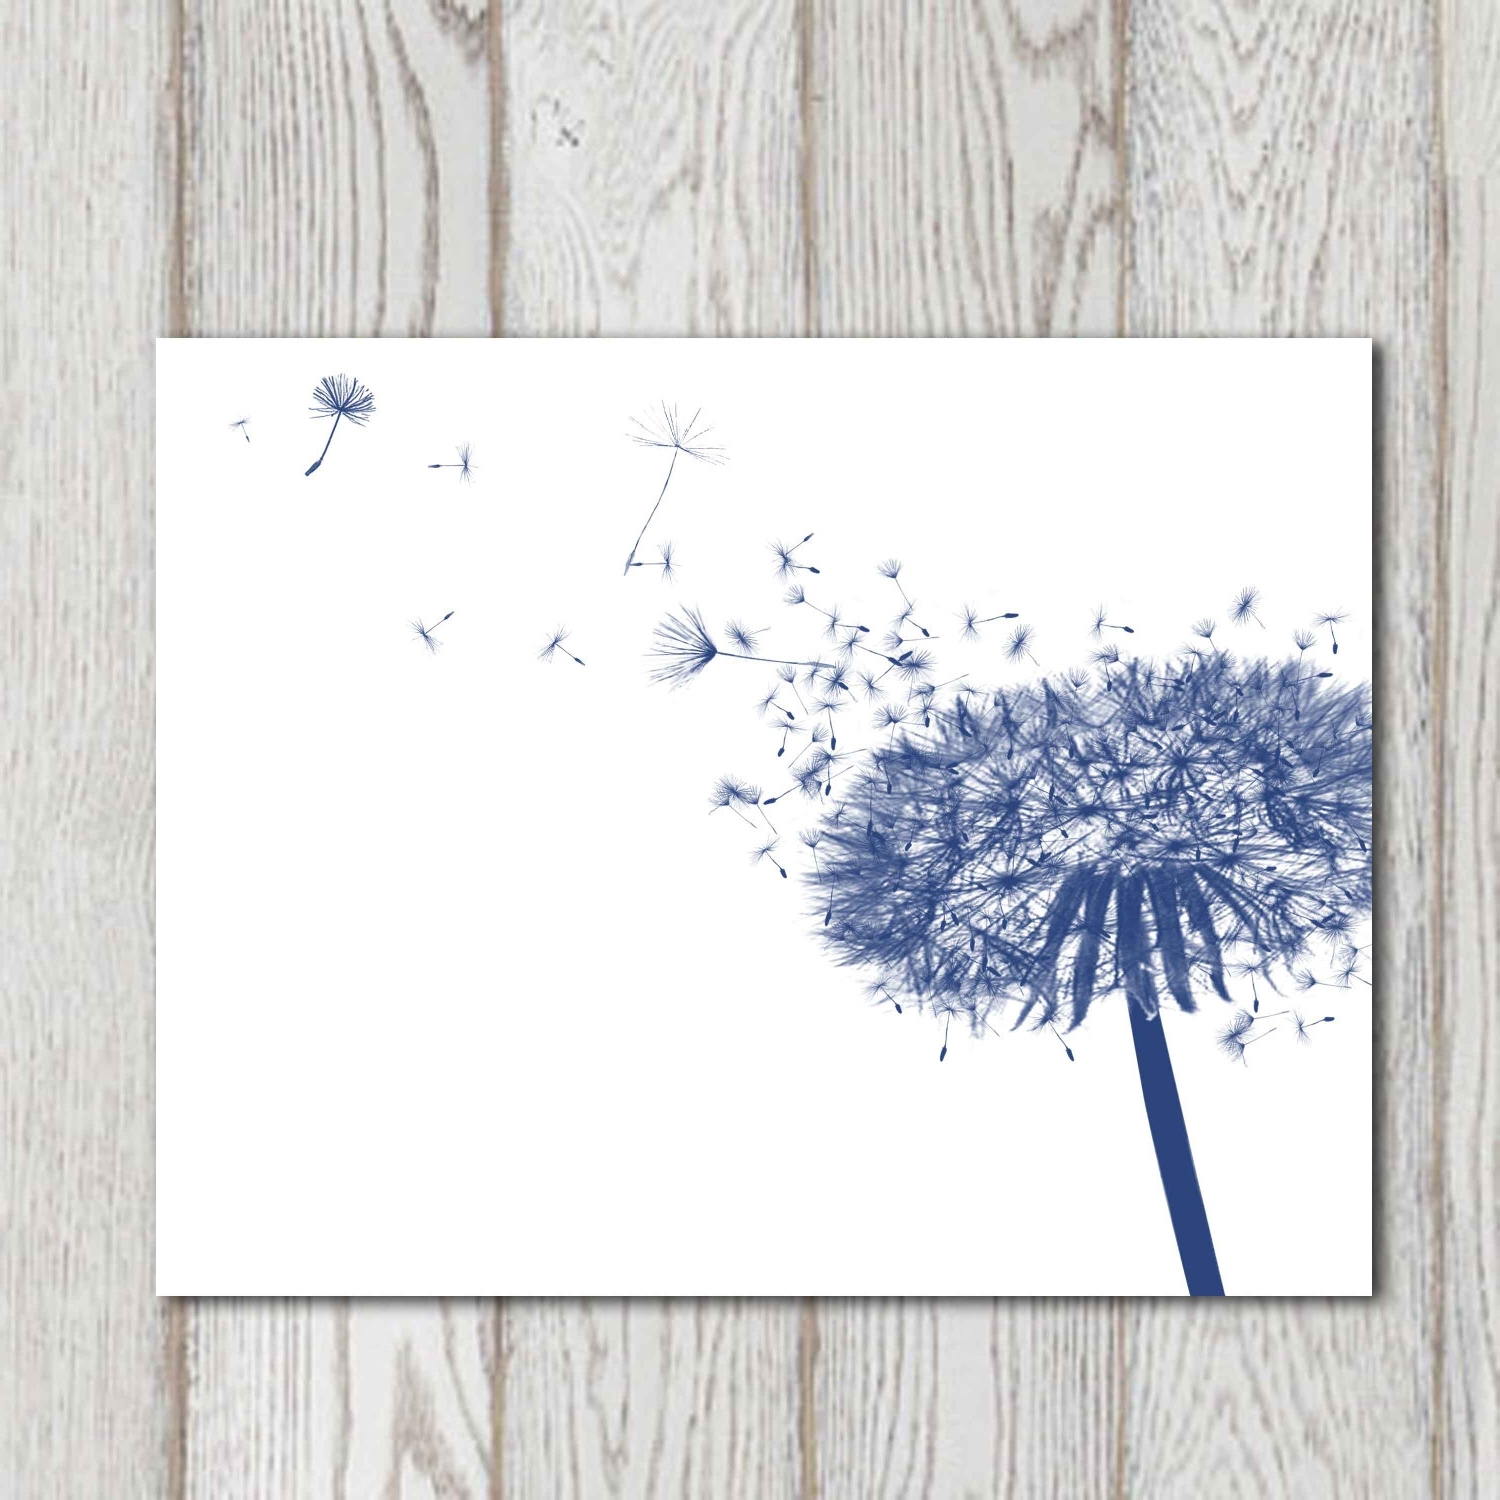 Dandelion Canvas Wall Art Regarding Newest Dandelion Decor Print Navy Blue Home Decor Navy Bedroom Decor (Gallery 4 of 15)